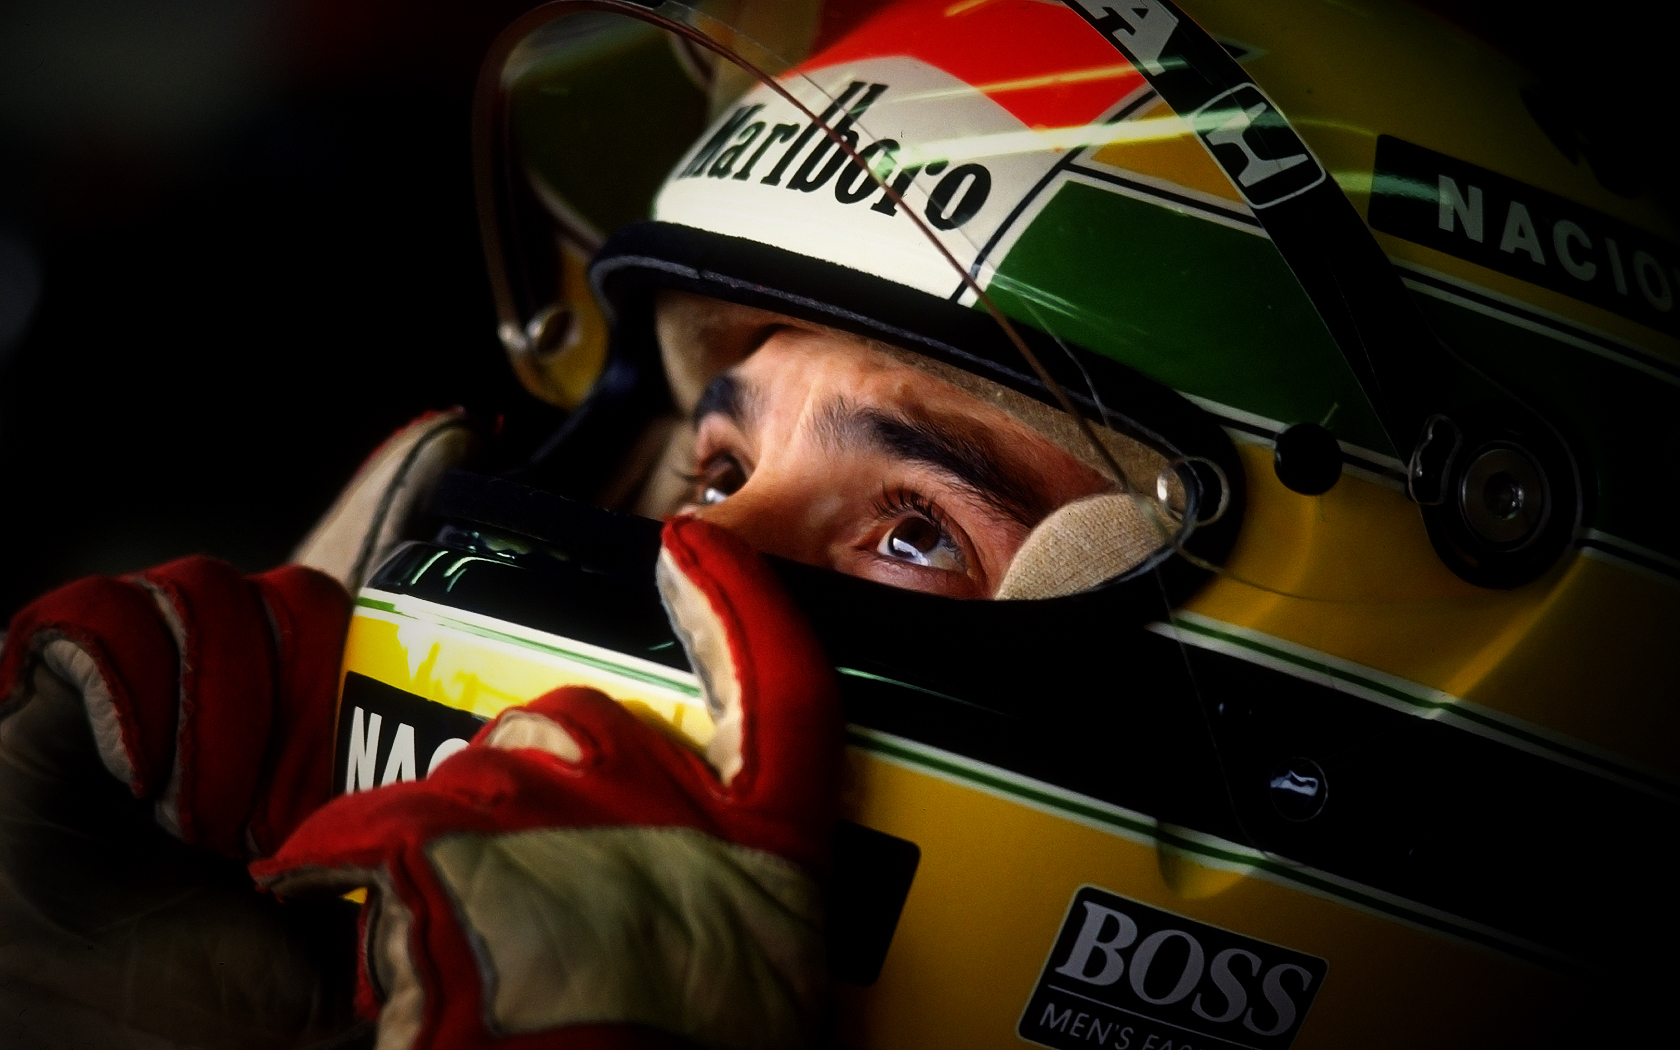 Ayrton Senna Wallpaper-3 by JohnnySlowhand